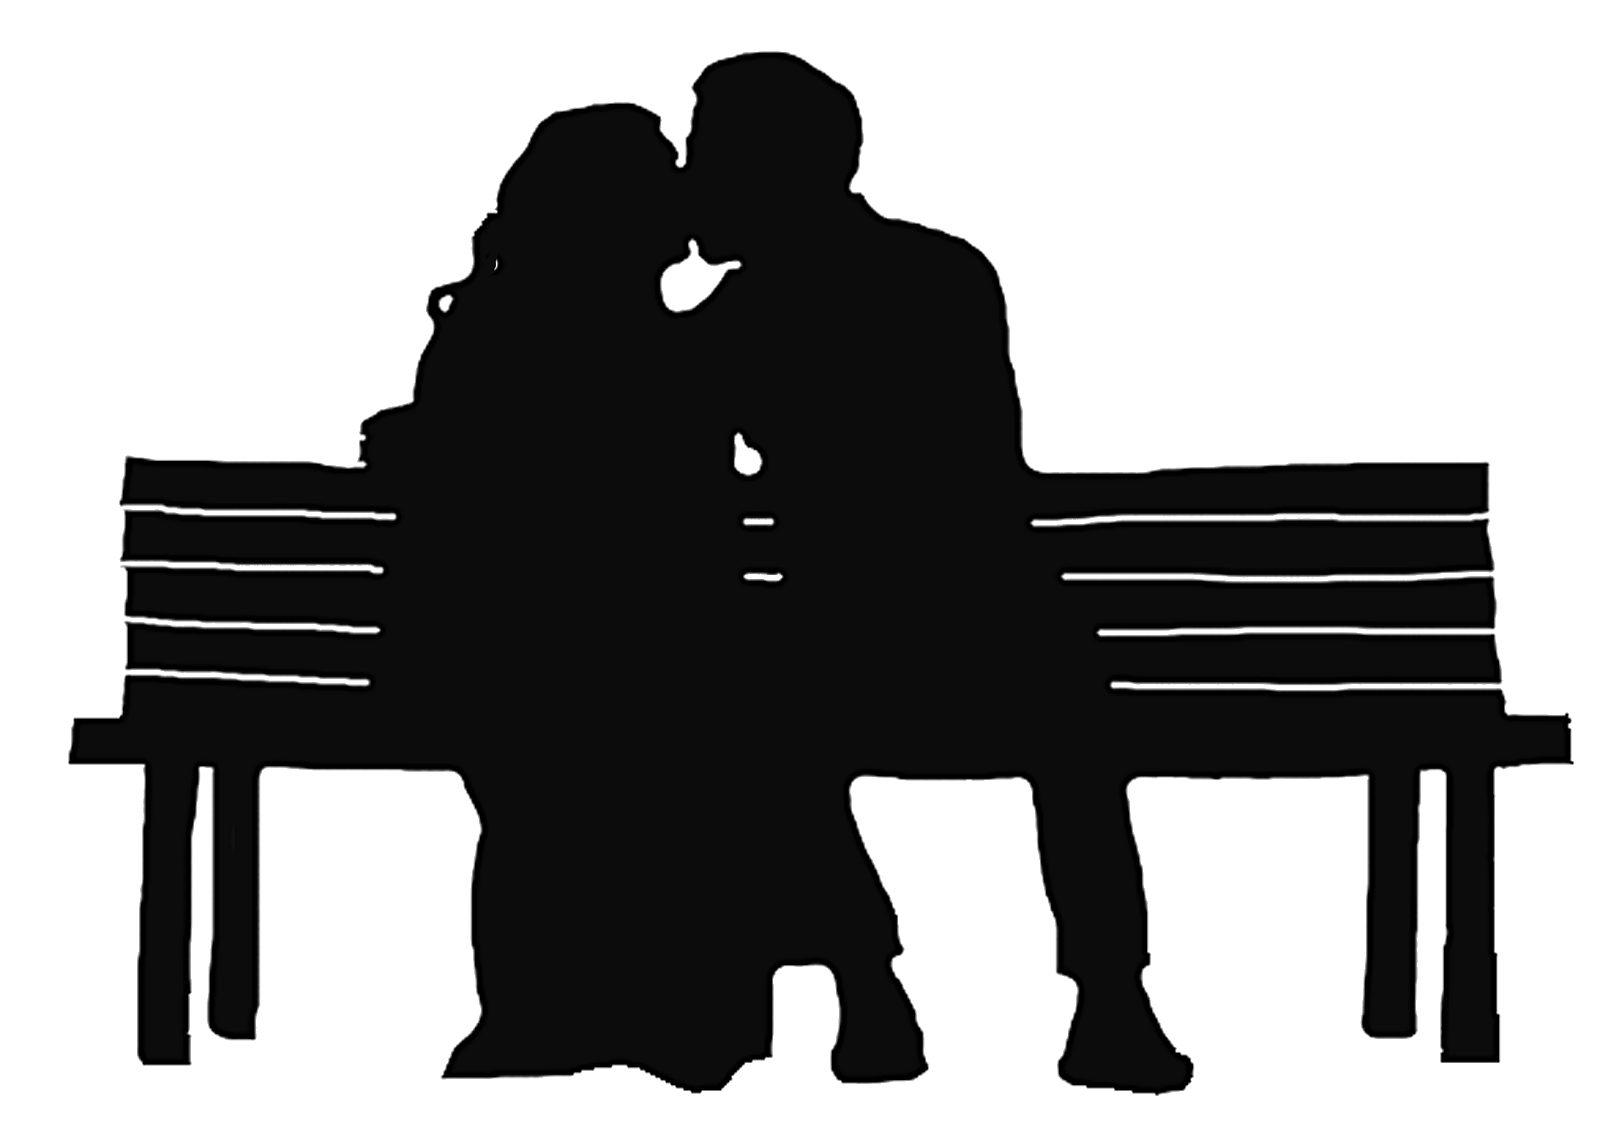 Piano clipart tool. Pamela young couple kissing